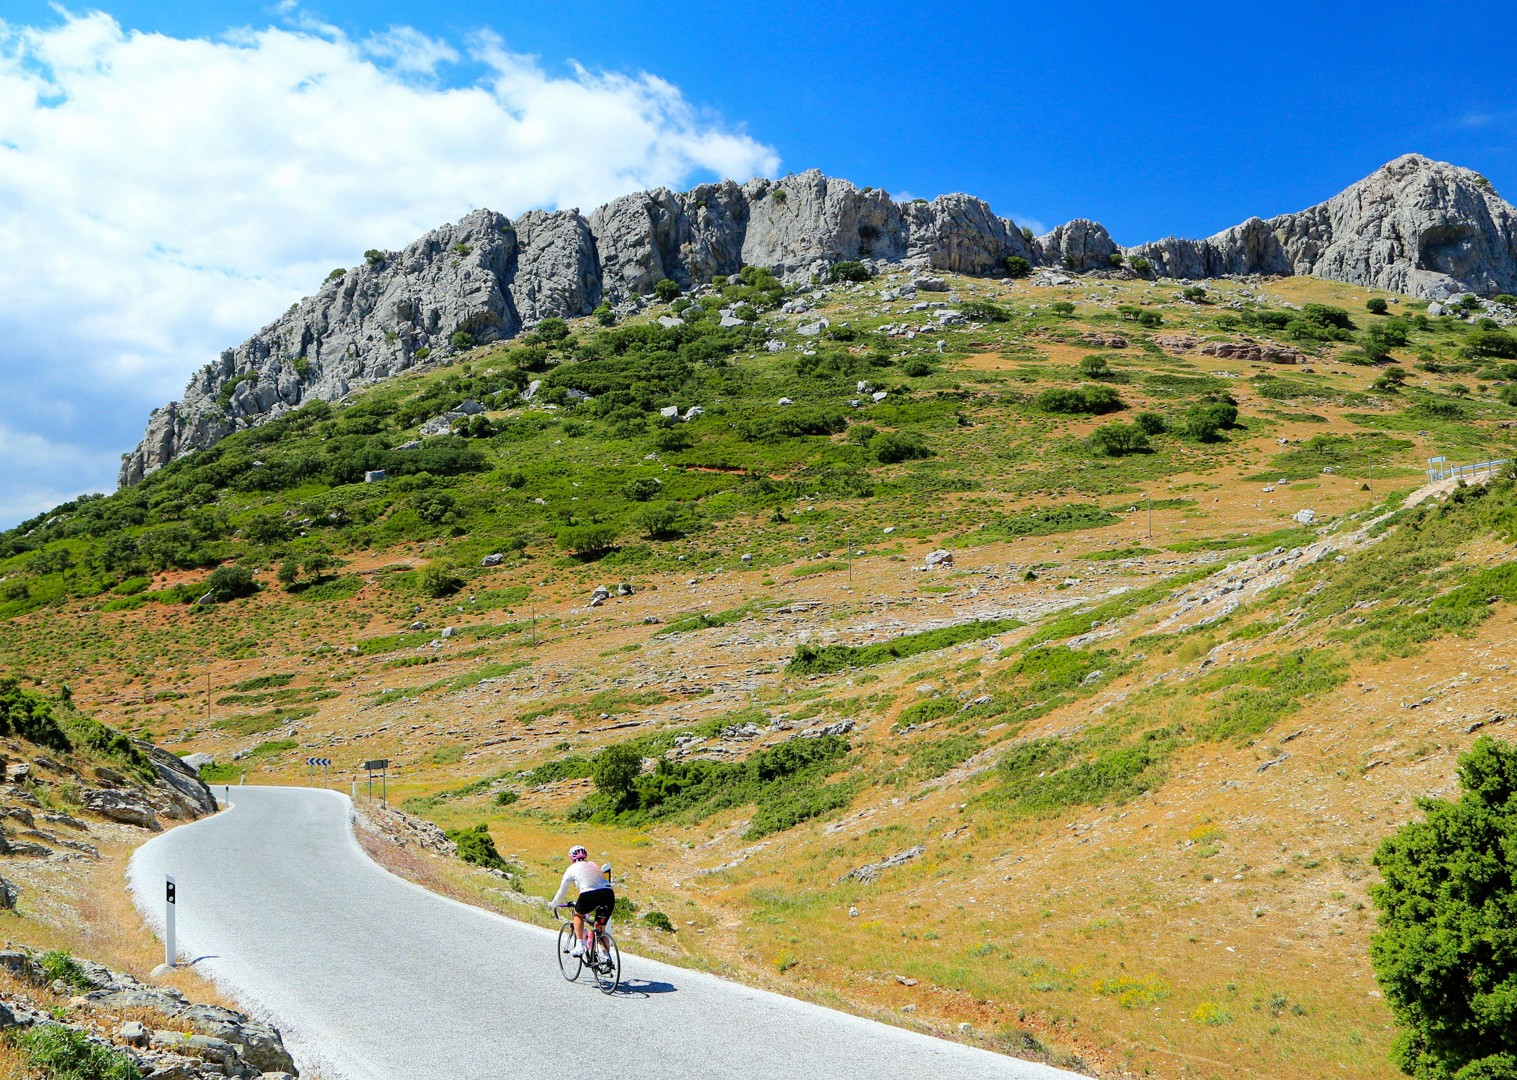 road-cycling-in-basque-country-to-andalucia.jpg - NEW! Spain - Basque Country to Andalucia - 21 Day - Road Cycling